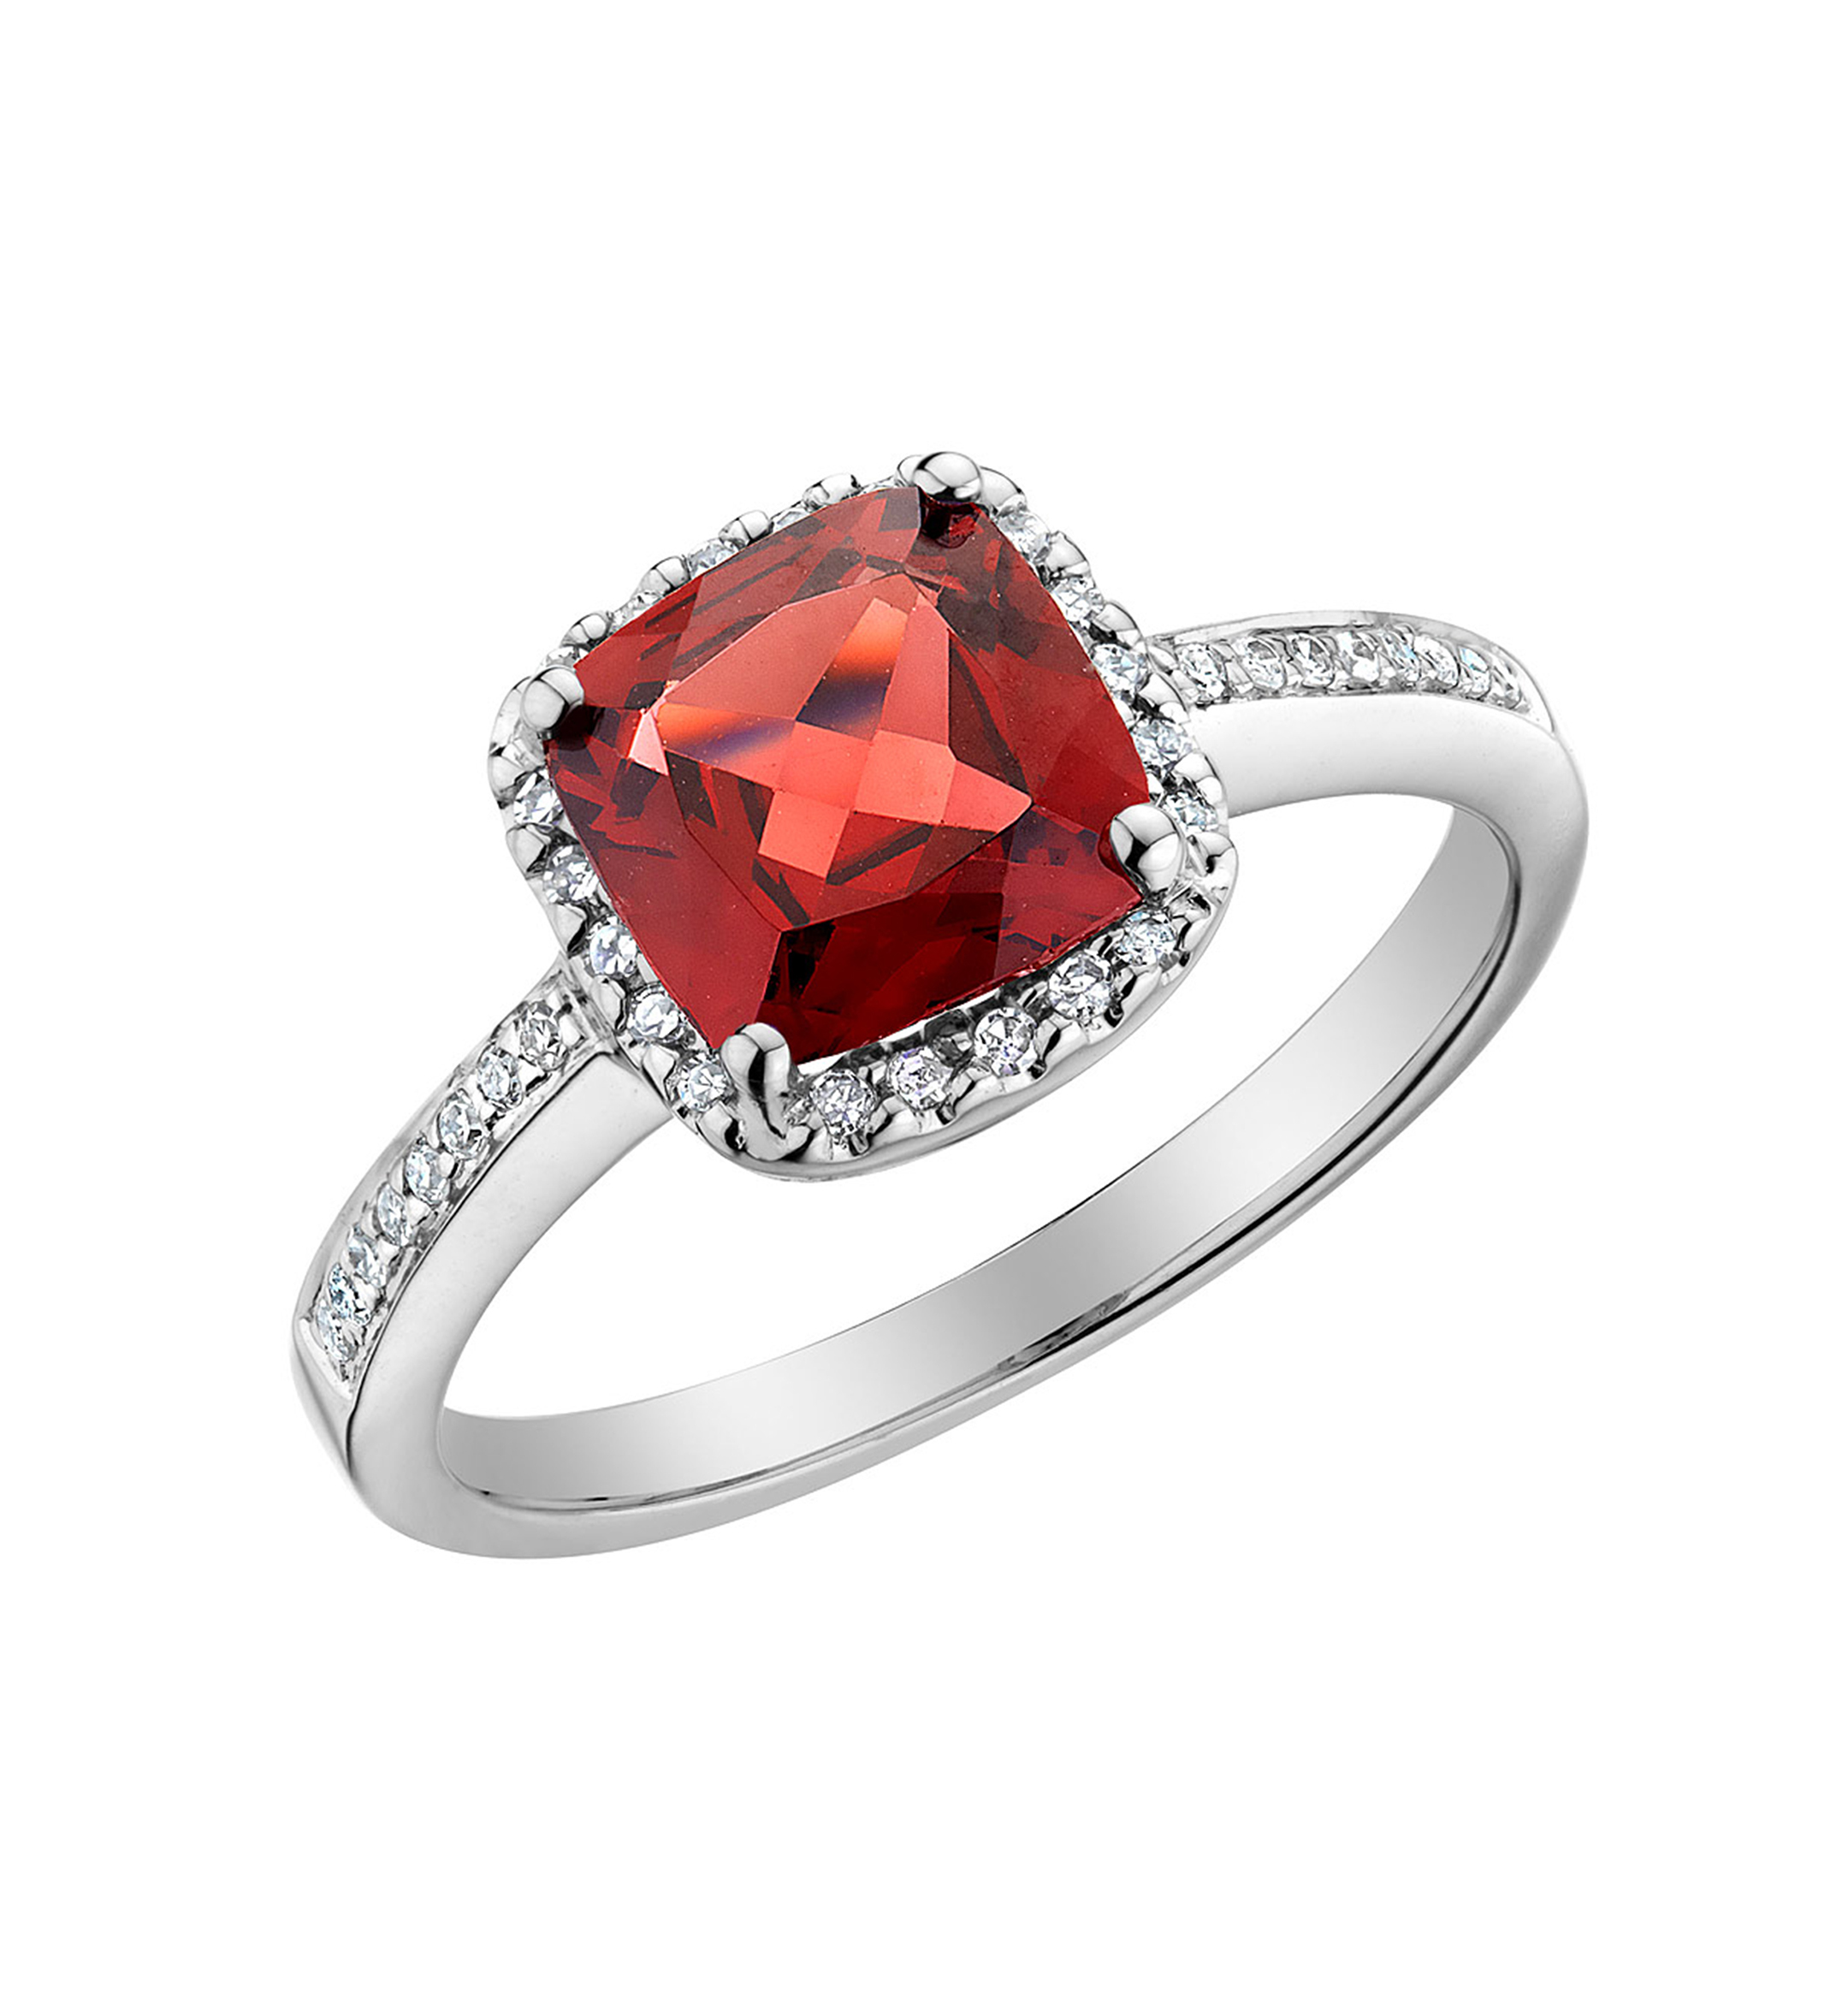 rings jewelry pigeon item blood ring galleria red jewellery diamond products fine ruby store